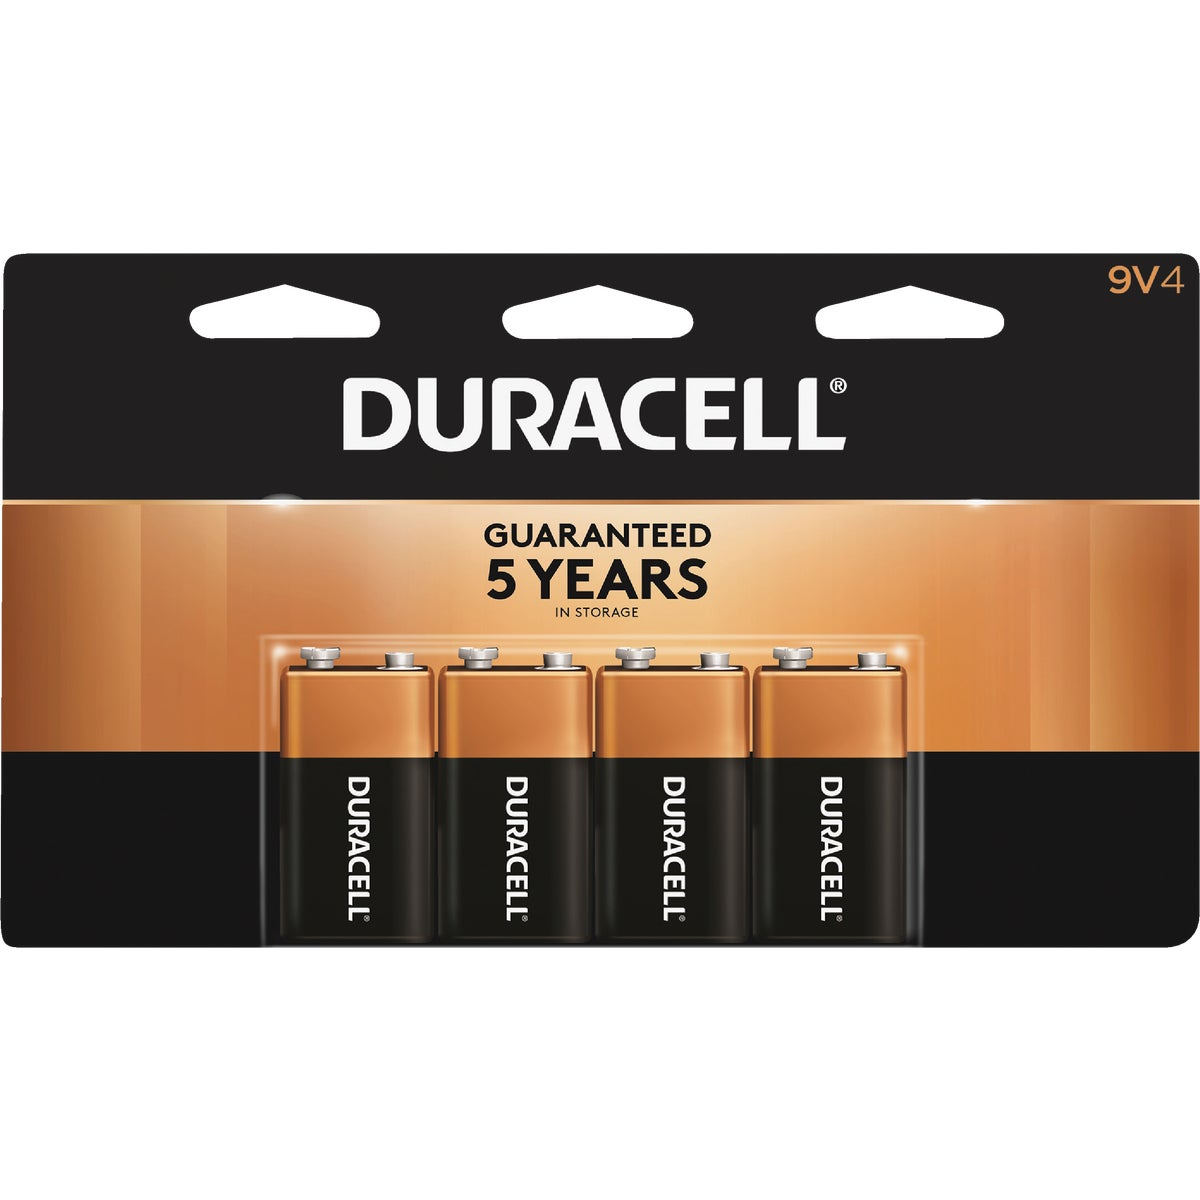 4PK 9V ALKALINE BATTERY - MN16B4DW by P & G  Duracell